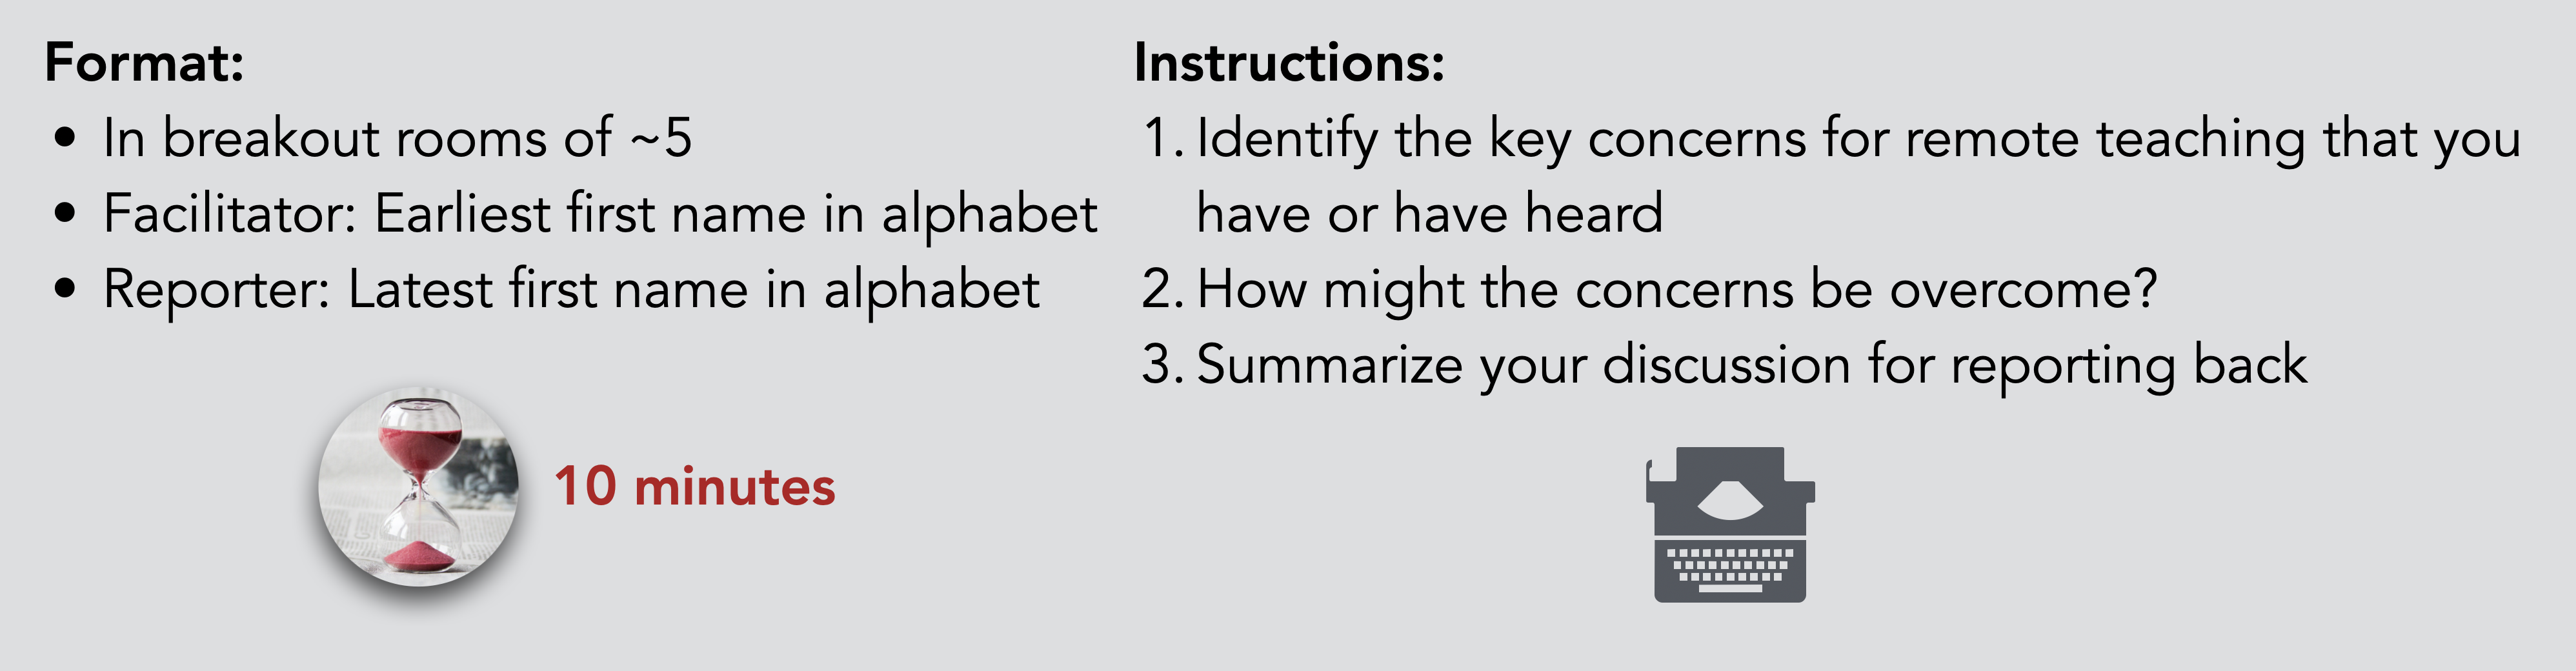 Format: In breakout rooms of ~5 Facilitator: Earliest first name in alphabet Reporter: Latest first name in alphabet. Instructions: Identify the key concerns for remote teaching that you have or have heard How might the concerns be overcome? Summarize your discussion for reporting back. Allocated time: 10 minutes.